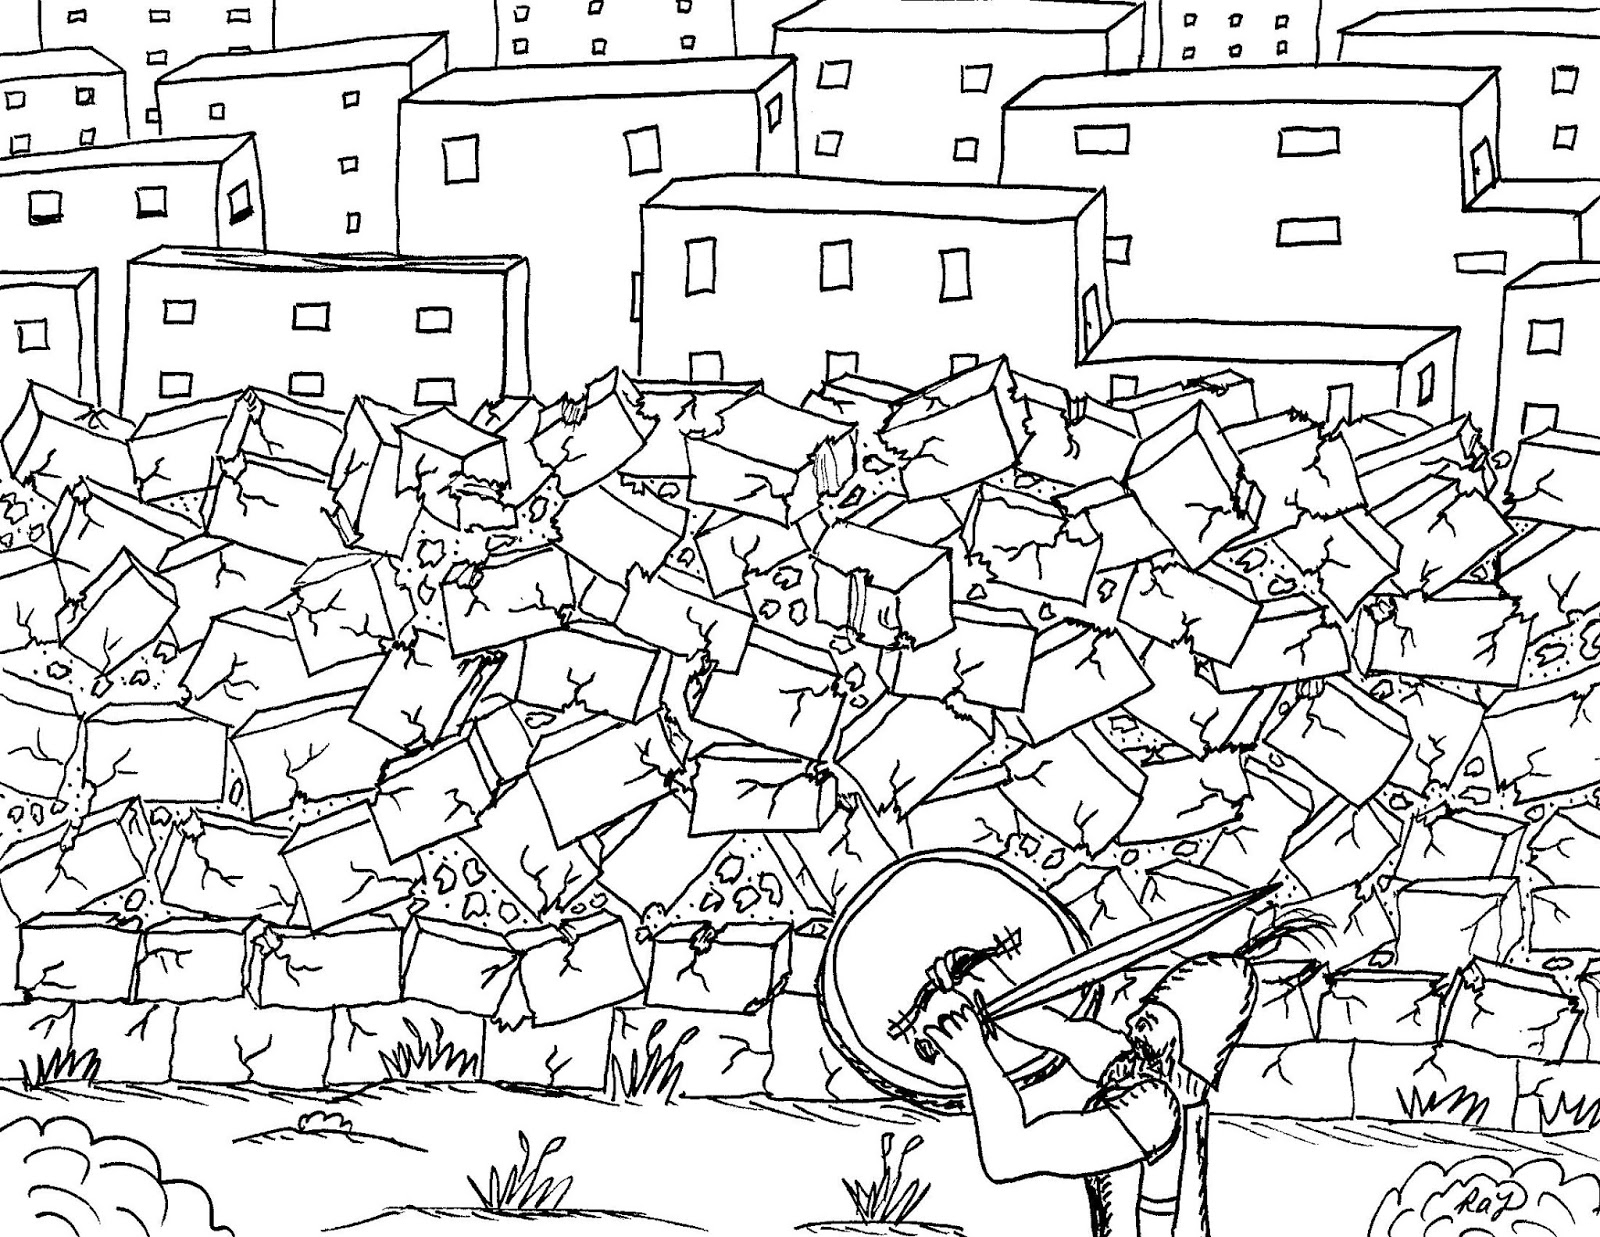 Joshua Fought The Battle Of Jericho Coloring Page Robins Great Coloring Pages Joshua Fought The Battle Of Jericho